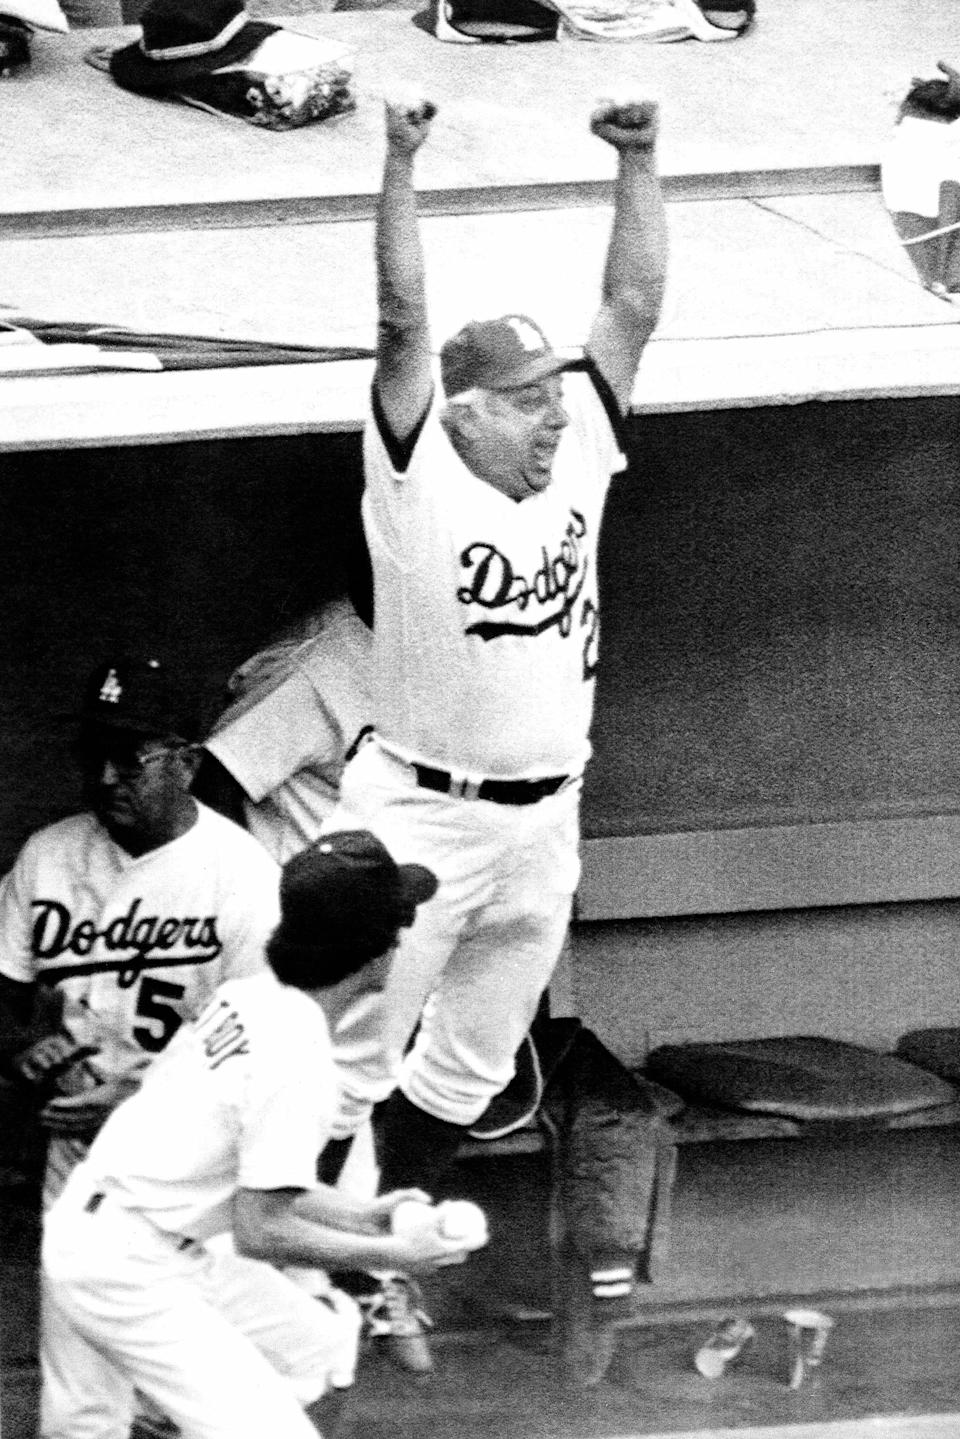 FILE - Los Angeles Dodgers manager Tom Lasorda leaps from the dugout as the Dodgers beat the New York Yankees, 8-7 to tie the World Series at two games apiece in Los Angeles, in this Saturday, Oct. 24, 1981, file photo. Lasorda, the fiery Hall of Fame manager who guided the Los Angeles Dodgers to two World Series titles and later became an ambassador for the sport he loved during his 71 years with the franchise, has died. He was 93. The Dodgers said Friday, Jan. 8, 2021, that he had a heart attack at his home in Fullerton, California. Resuscitation attempts were made on the way to a hospital, where he was pronounced dead shortly before 11 p.m. Thursday. (AP Photo/File)